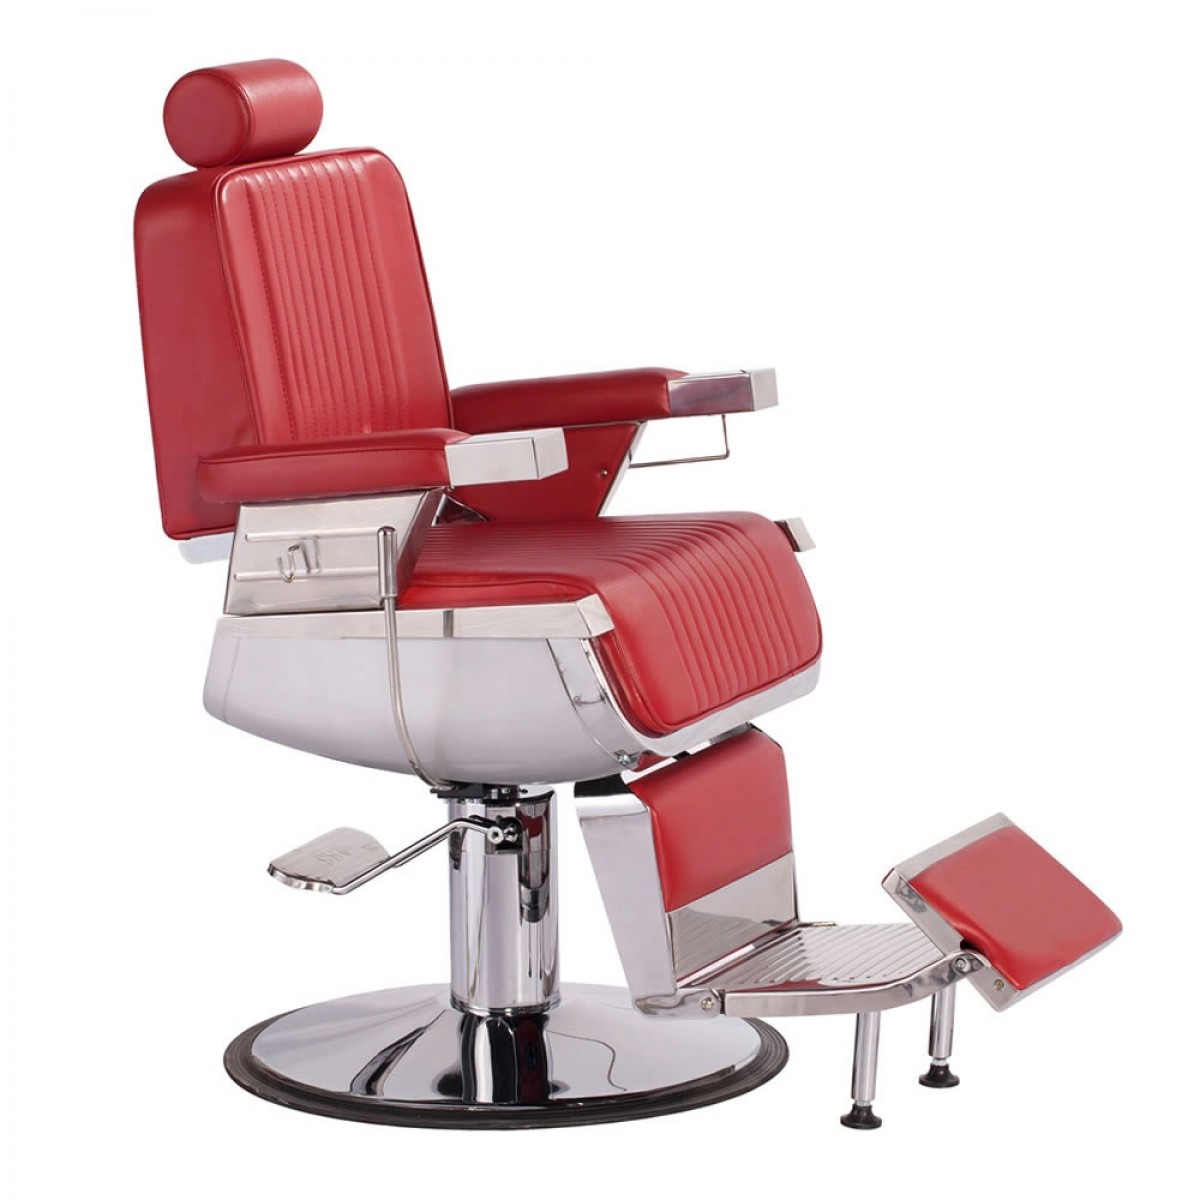 Red Salon Chairs Quotconstantine Quot Barber Chair In Cardinal Red Red Barber